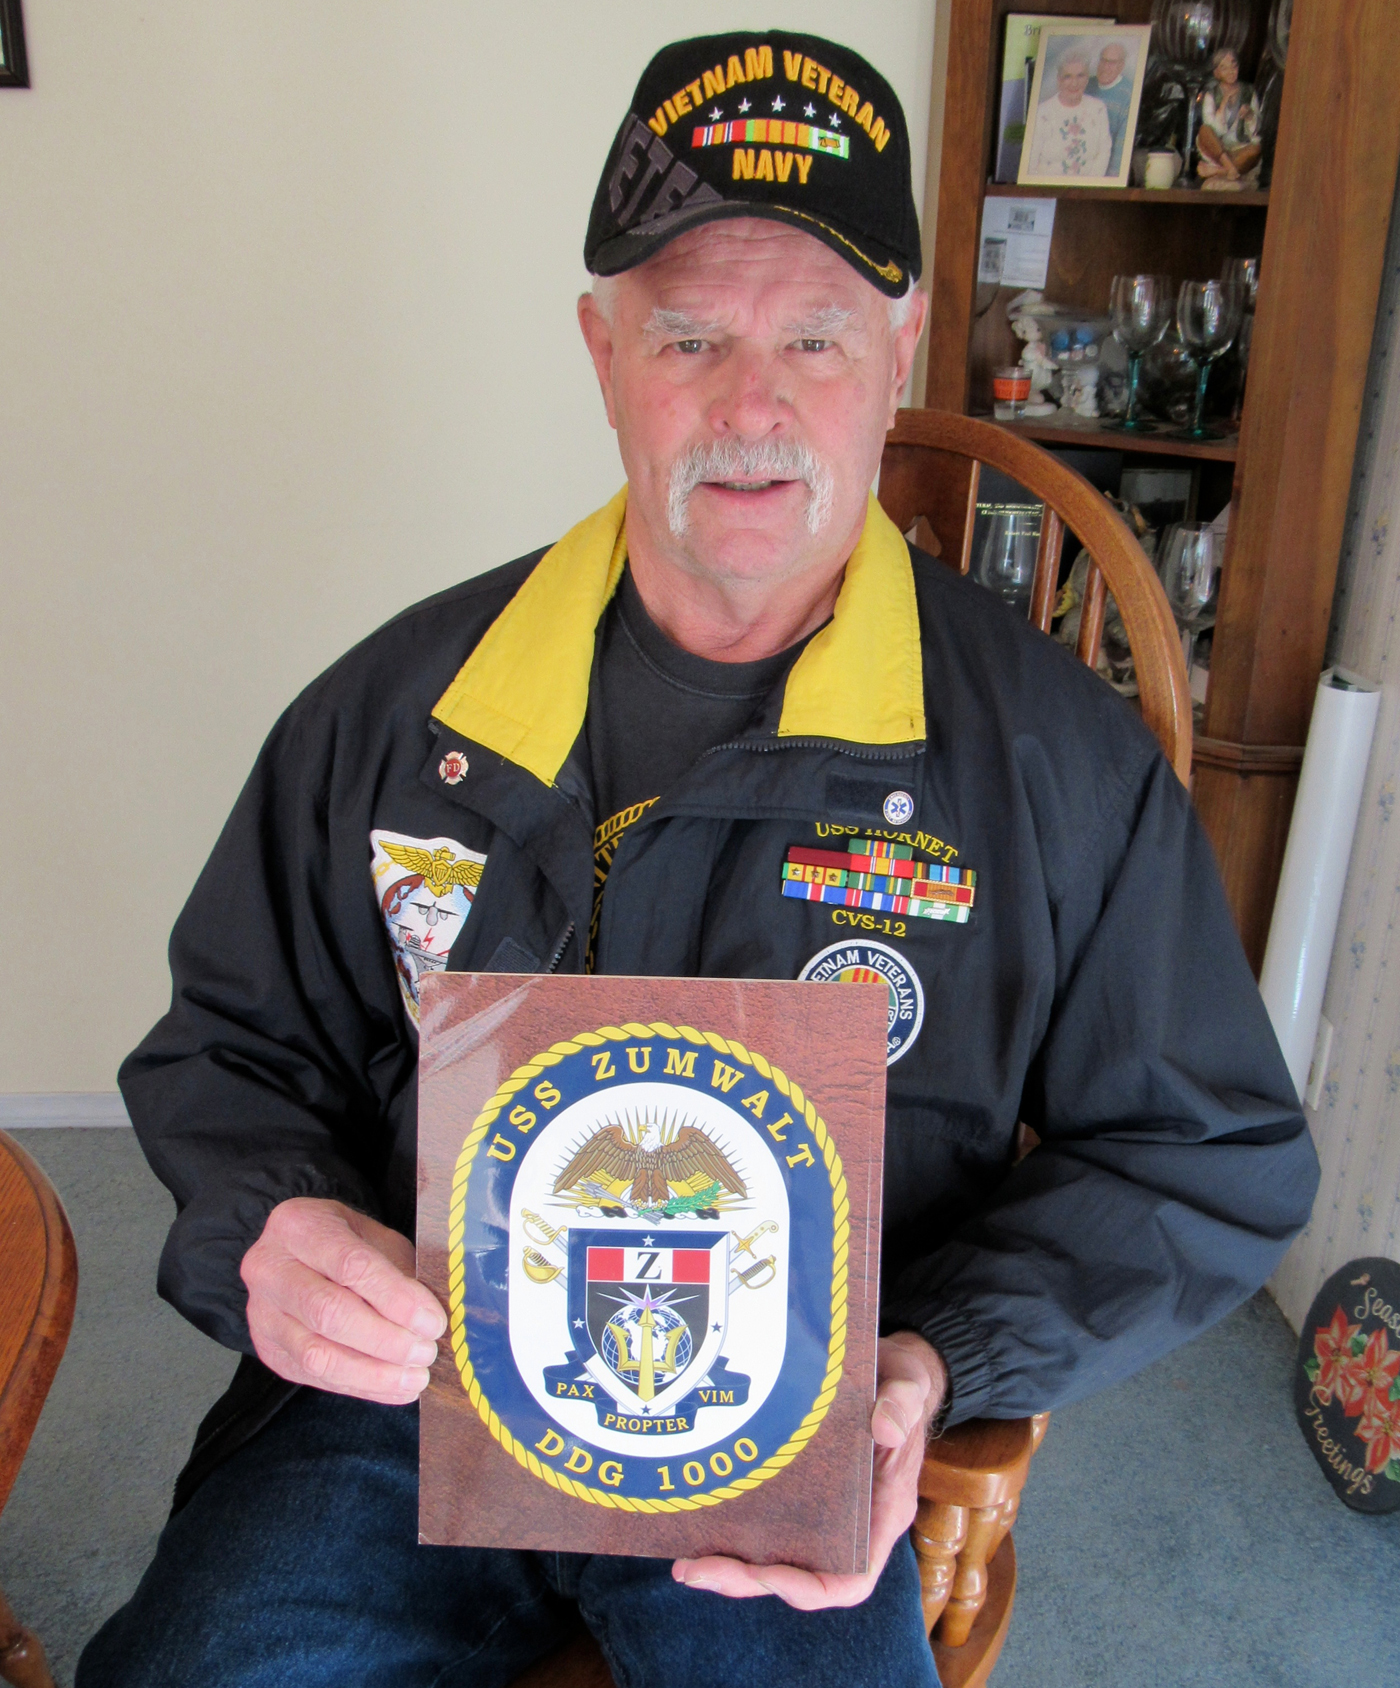 "Tom Hetherington holds a booklet he received while attending the commissioning of the new U.S. Navy Destroyer USS Zumwalt in Baltimore, Maryland. The motto of the state of the art ship is ""Pax Propter Vim"" - Peace Through Power. K. Gabalski photo."